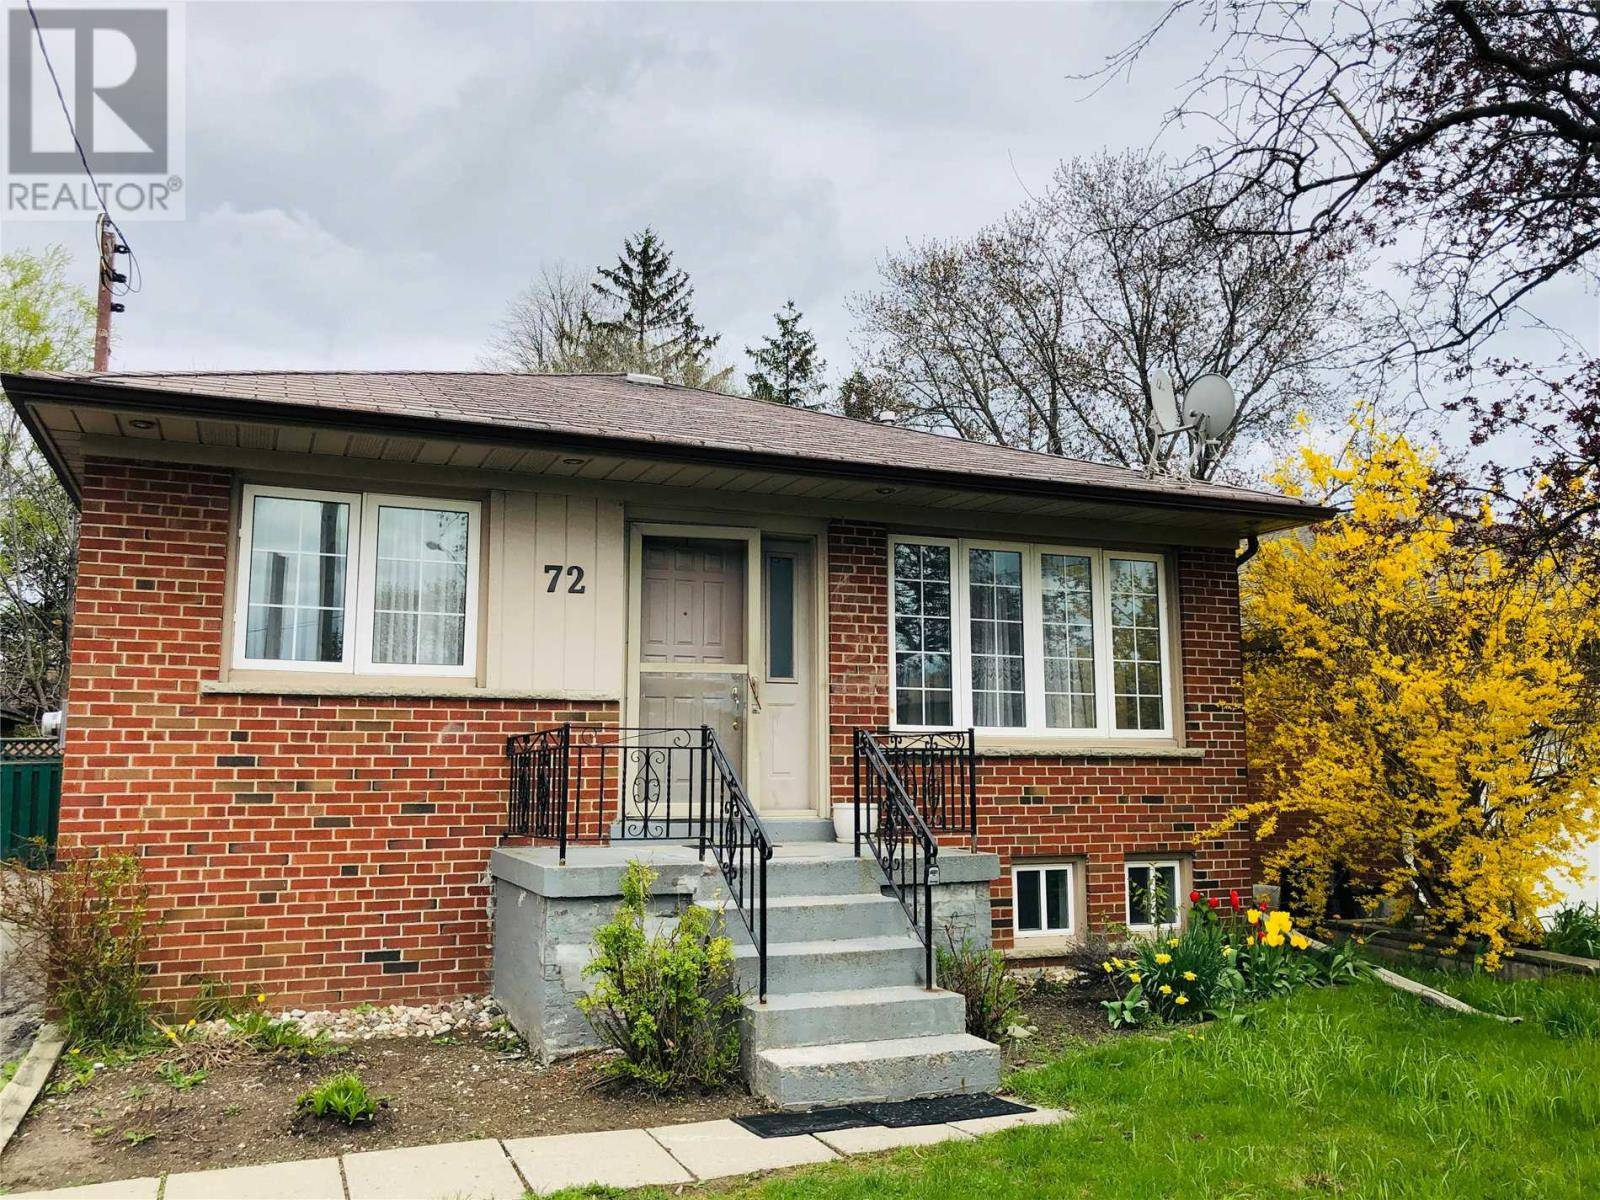 House for sale at 72 Rayside Dr Toronto Ontario - MLS: W4443272